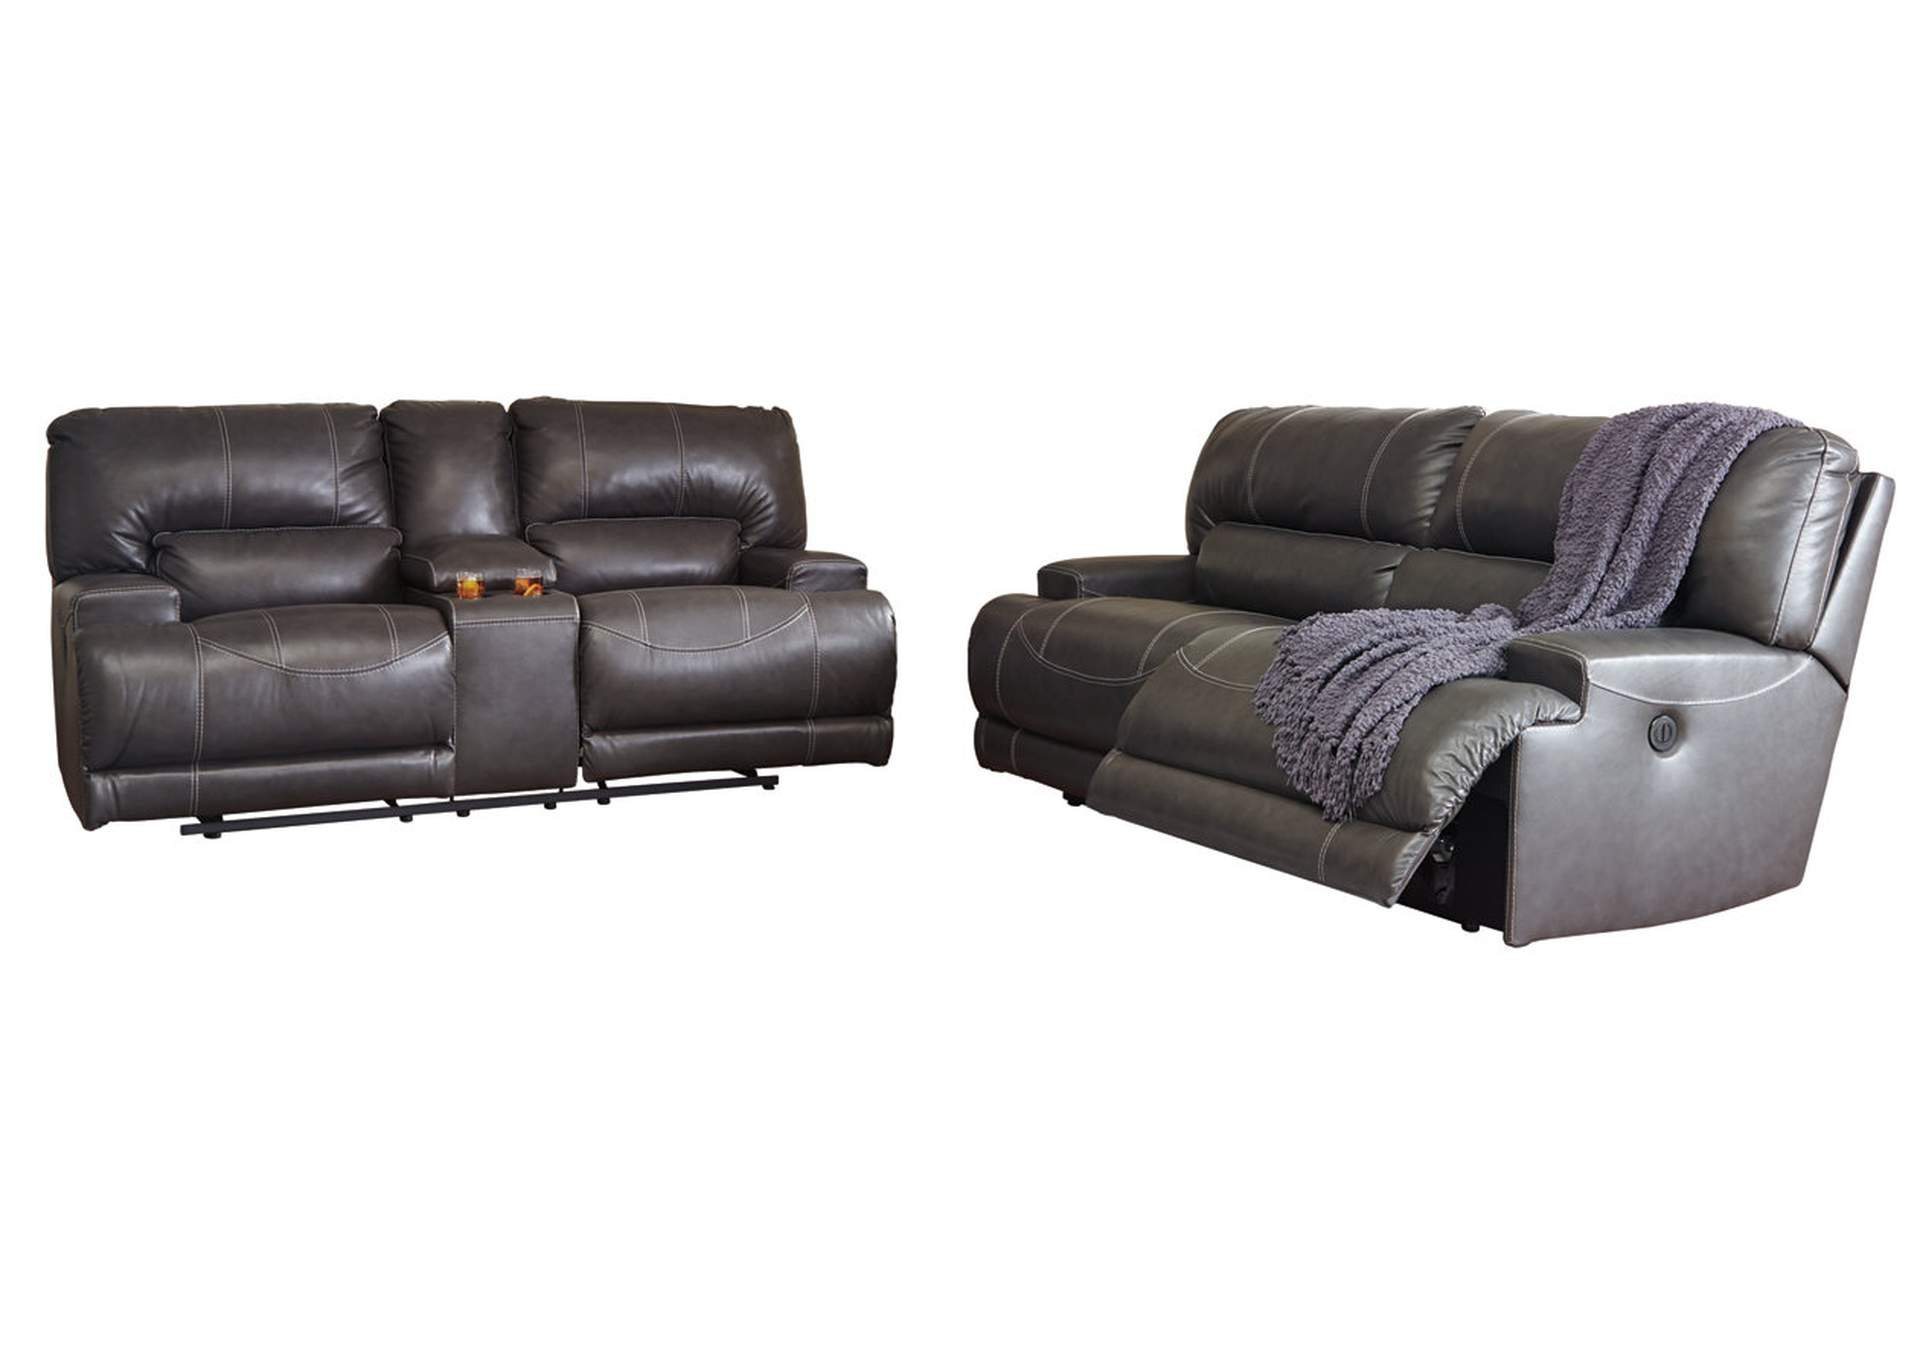 American Furniture Galleries Mccaskill Gray 2 Seat Reclining Power Sofa And Loveseat